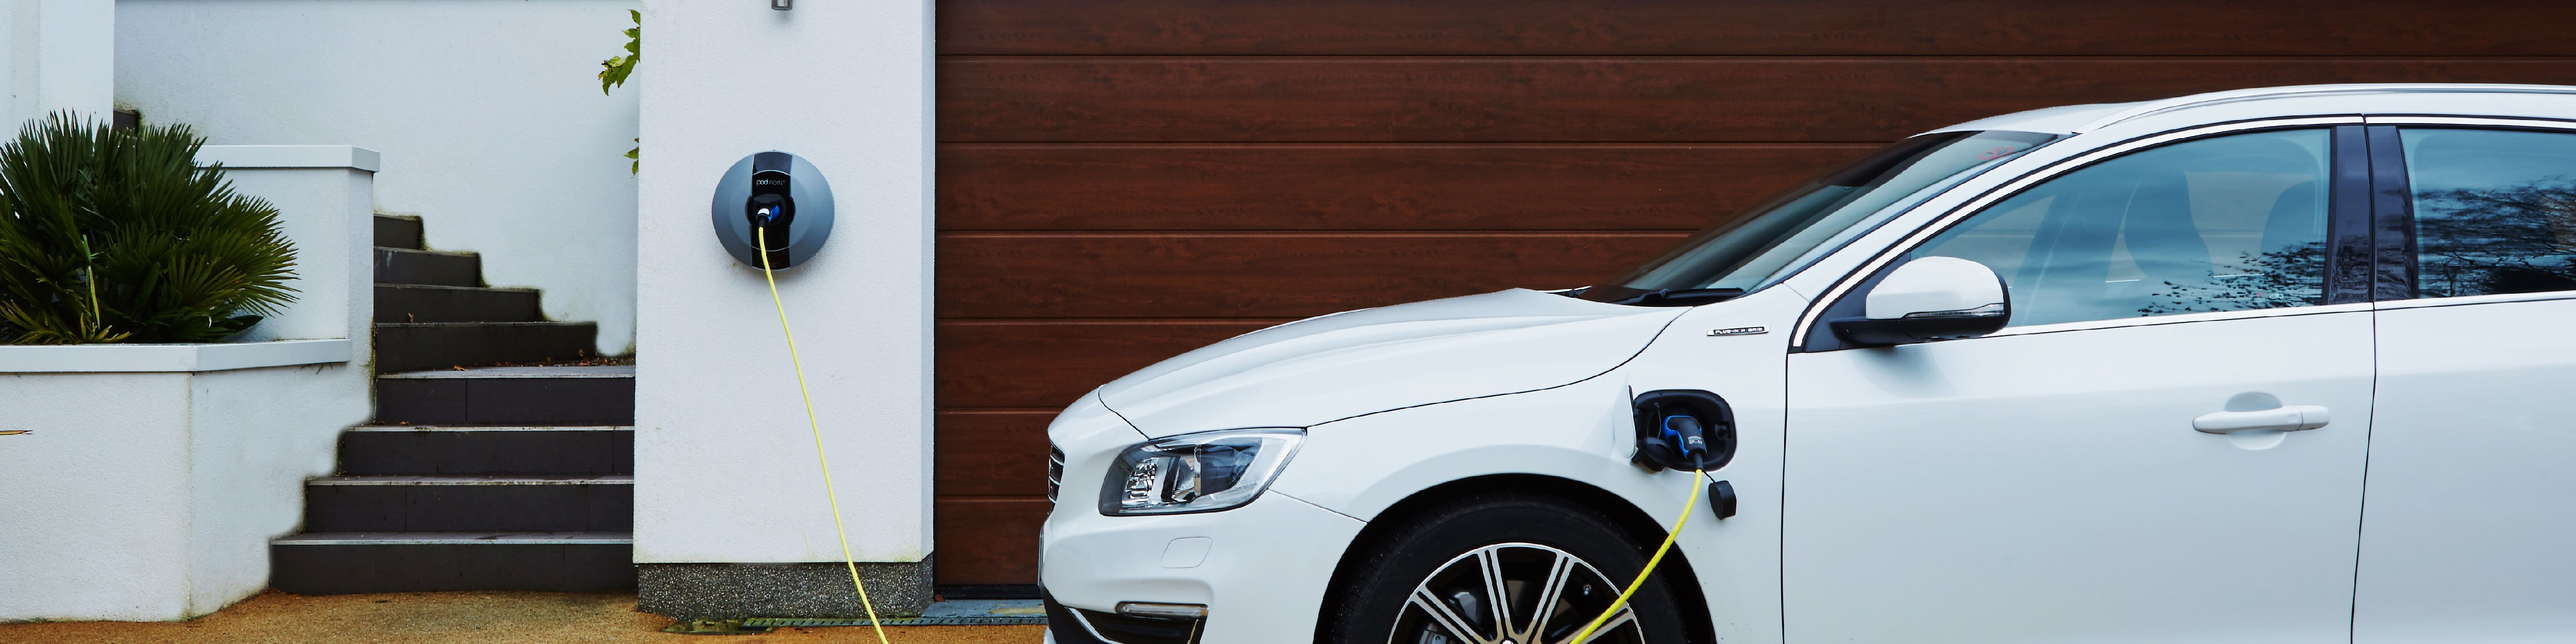 Volvo-Cars-UK-blog-post-artwork-01-01